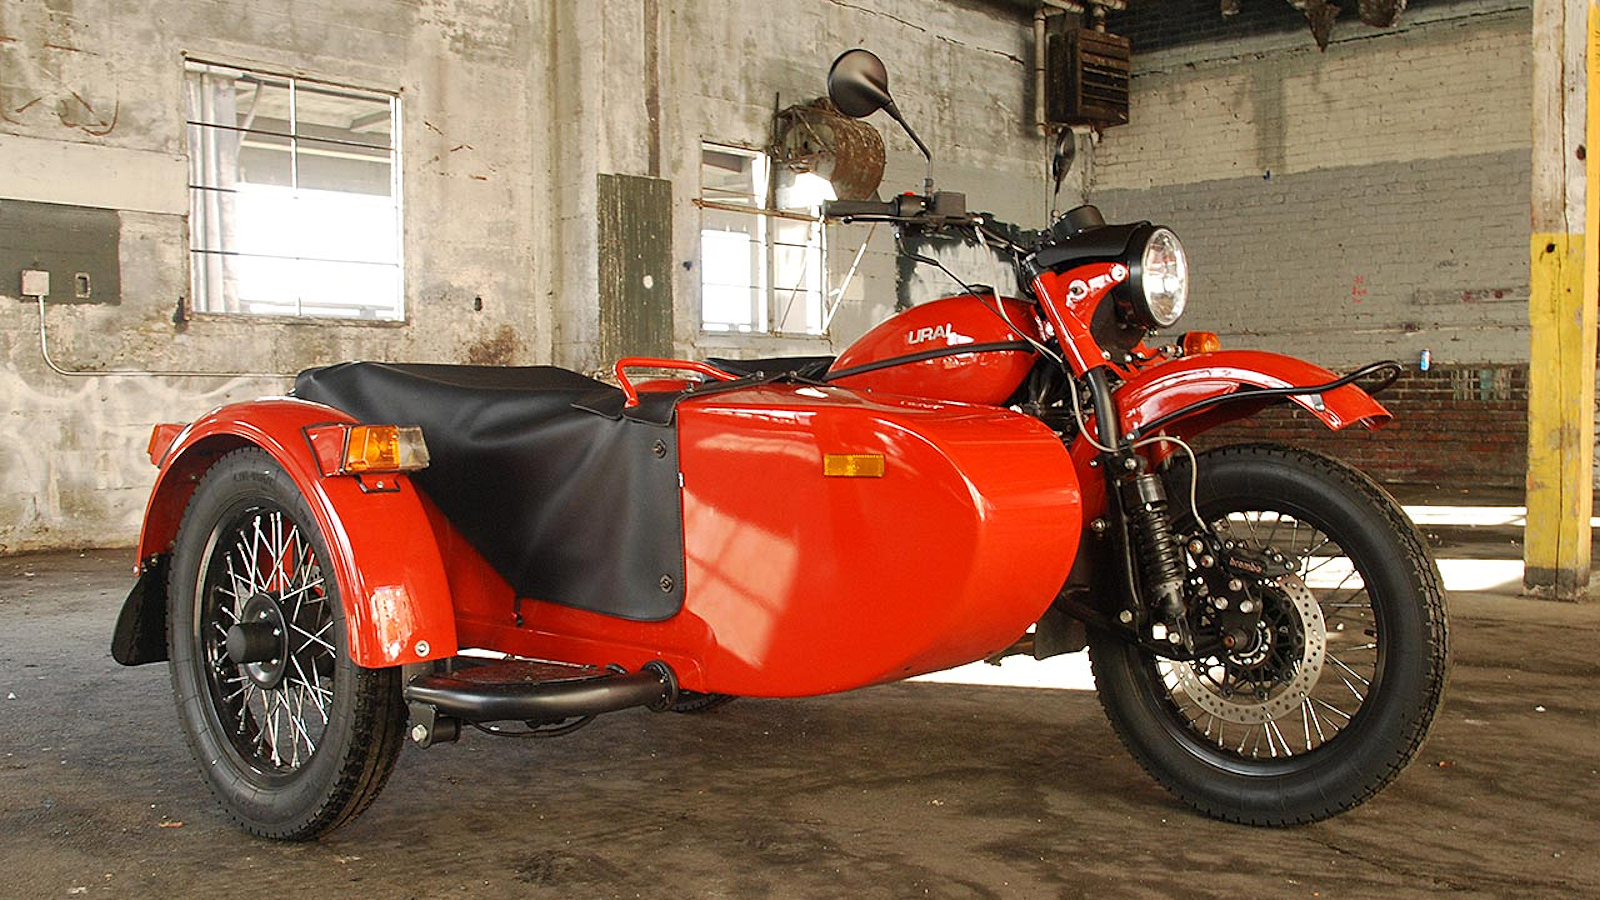 2019 Ural CT Pictures, Photos, Wallpapers.